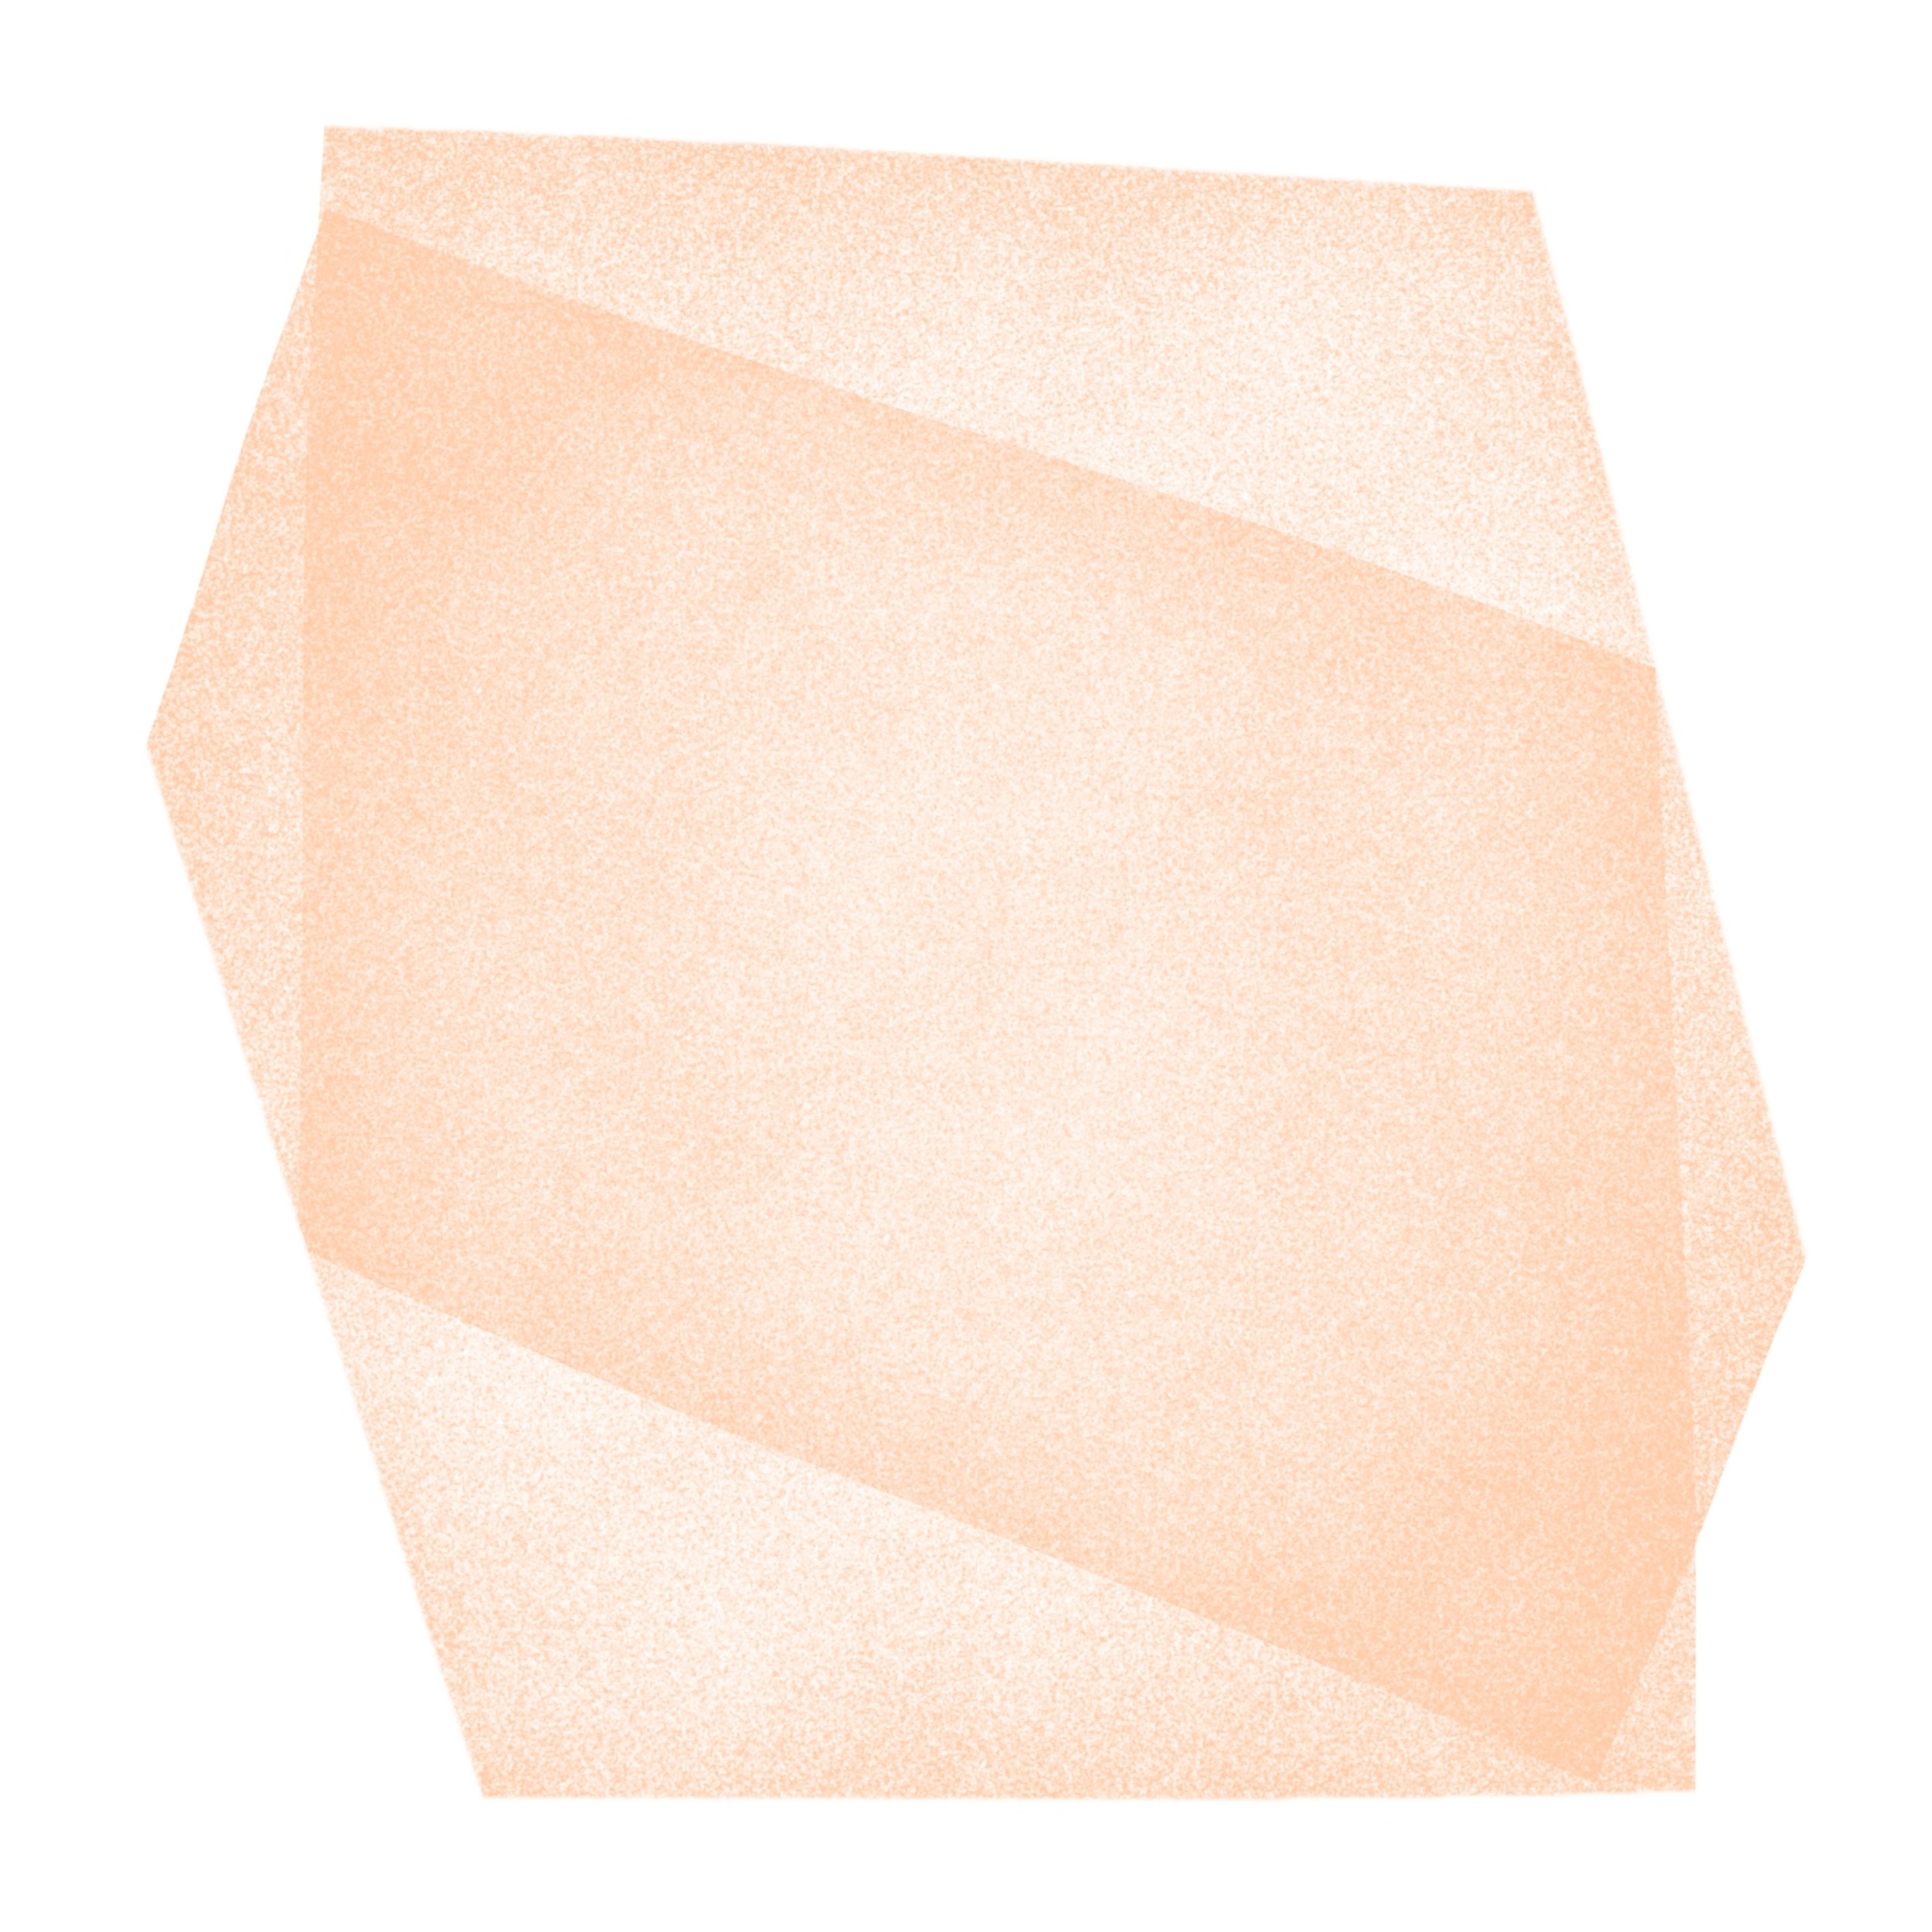 Pale Peach Structure: Soft Geometry